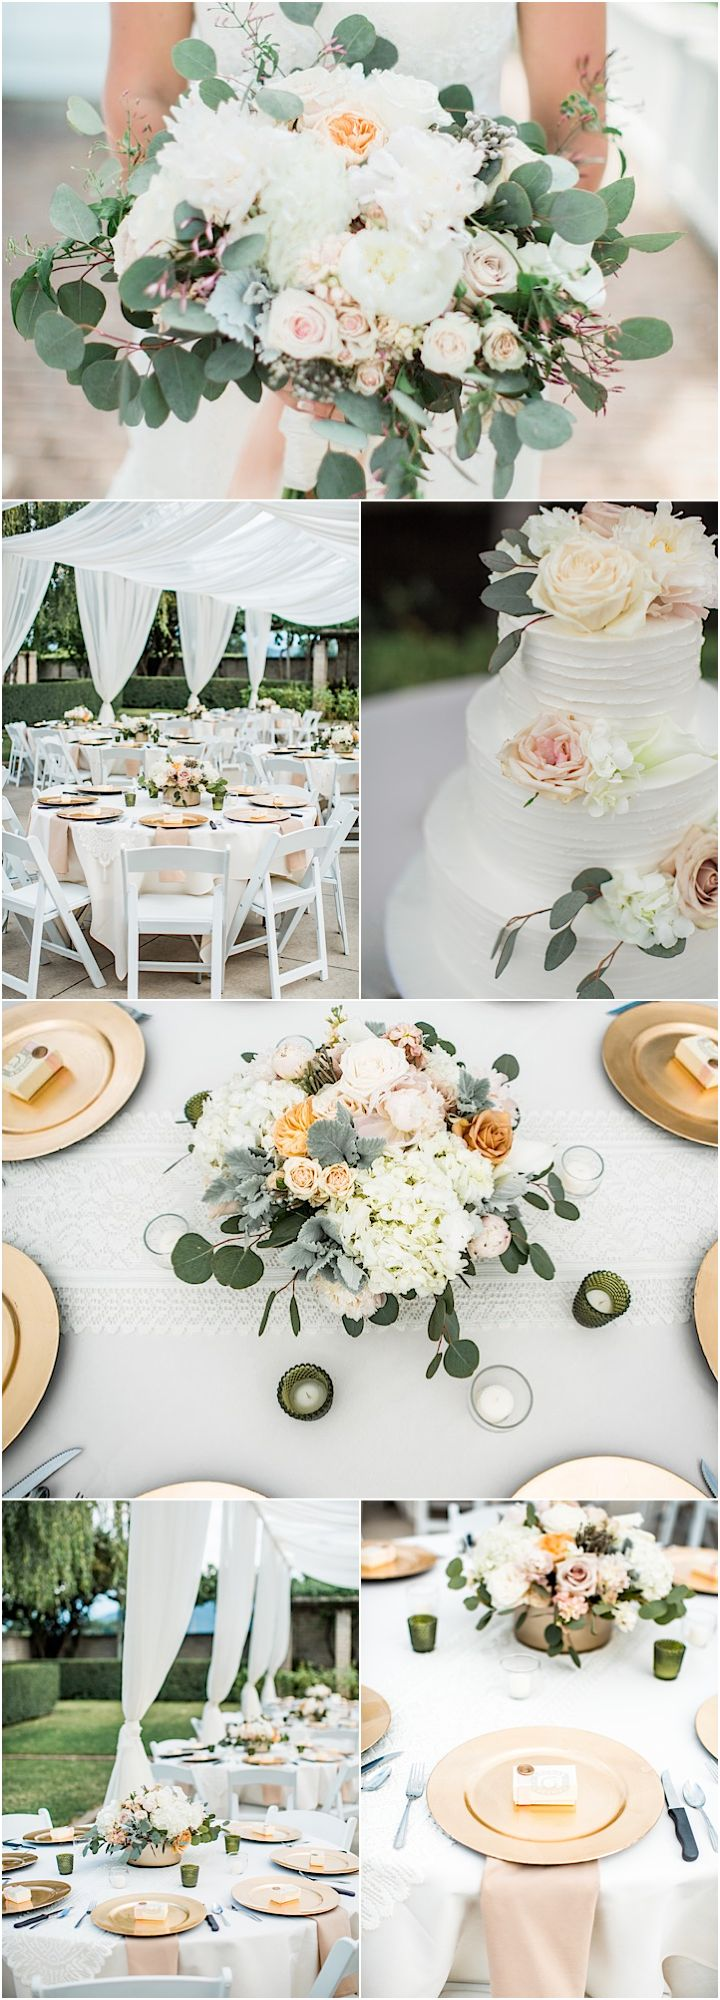 Featured Photographer: Lahna Marie Photography; outdoor wedding reception idea